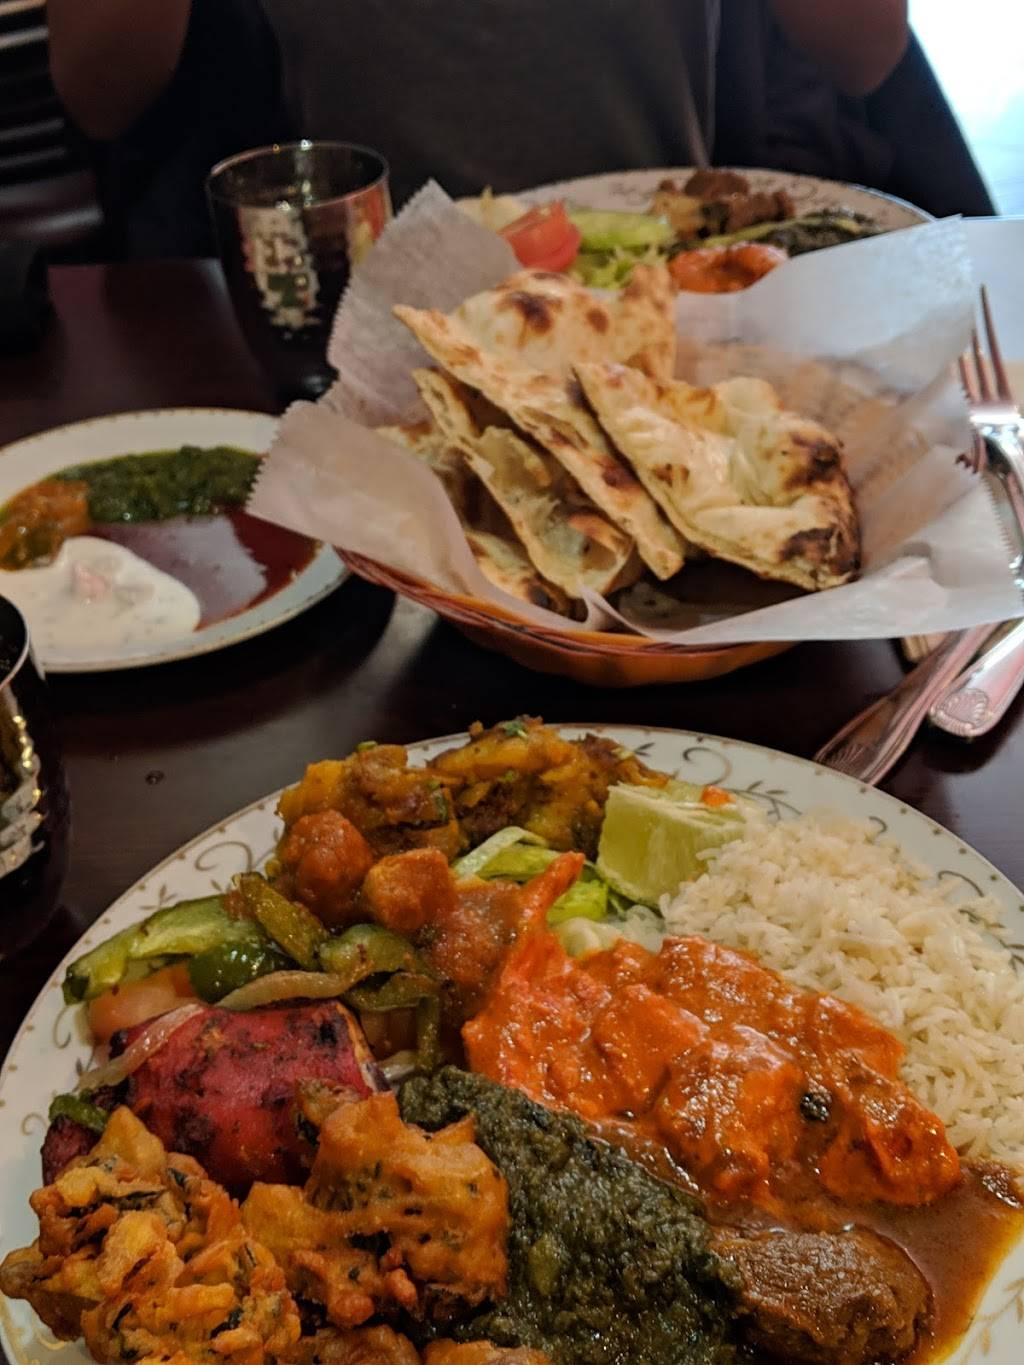 Tadka Indian Cuisine | meal takeaway | 13-15 43rd Ave, Long Island City, NY 11101, USA | 7187847444 OR +1 718-784-7444